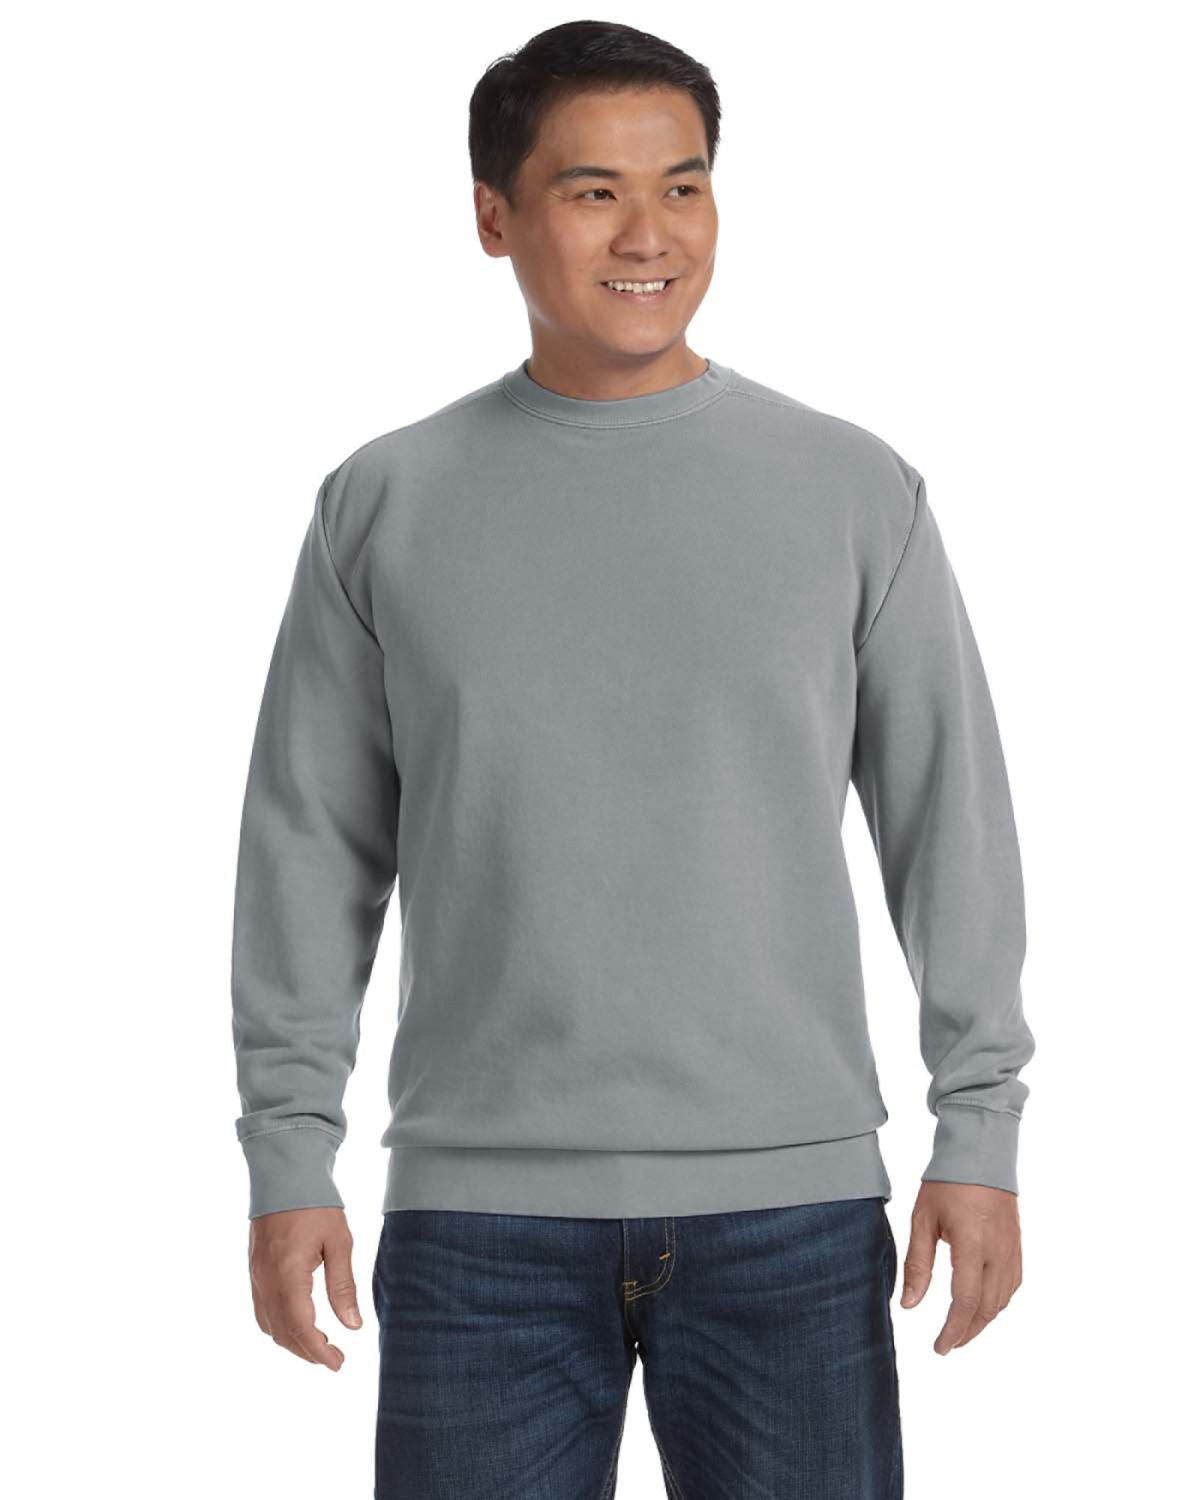 Comfort Colors 1566 Pigment-Dyed Crewneck Sweatshirt